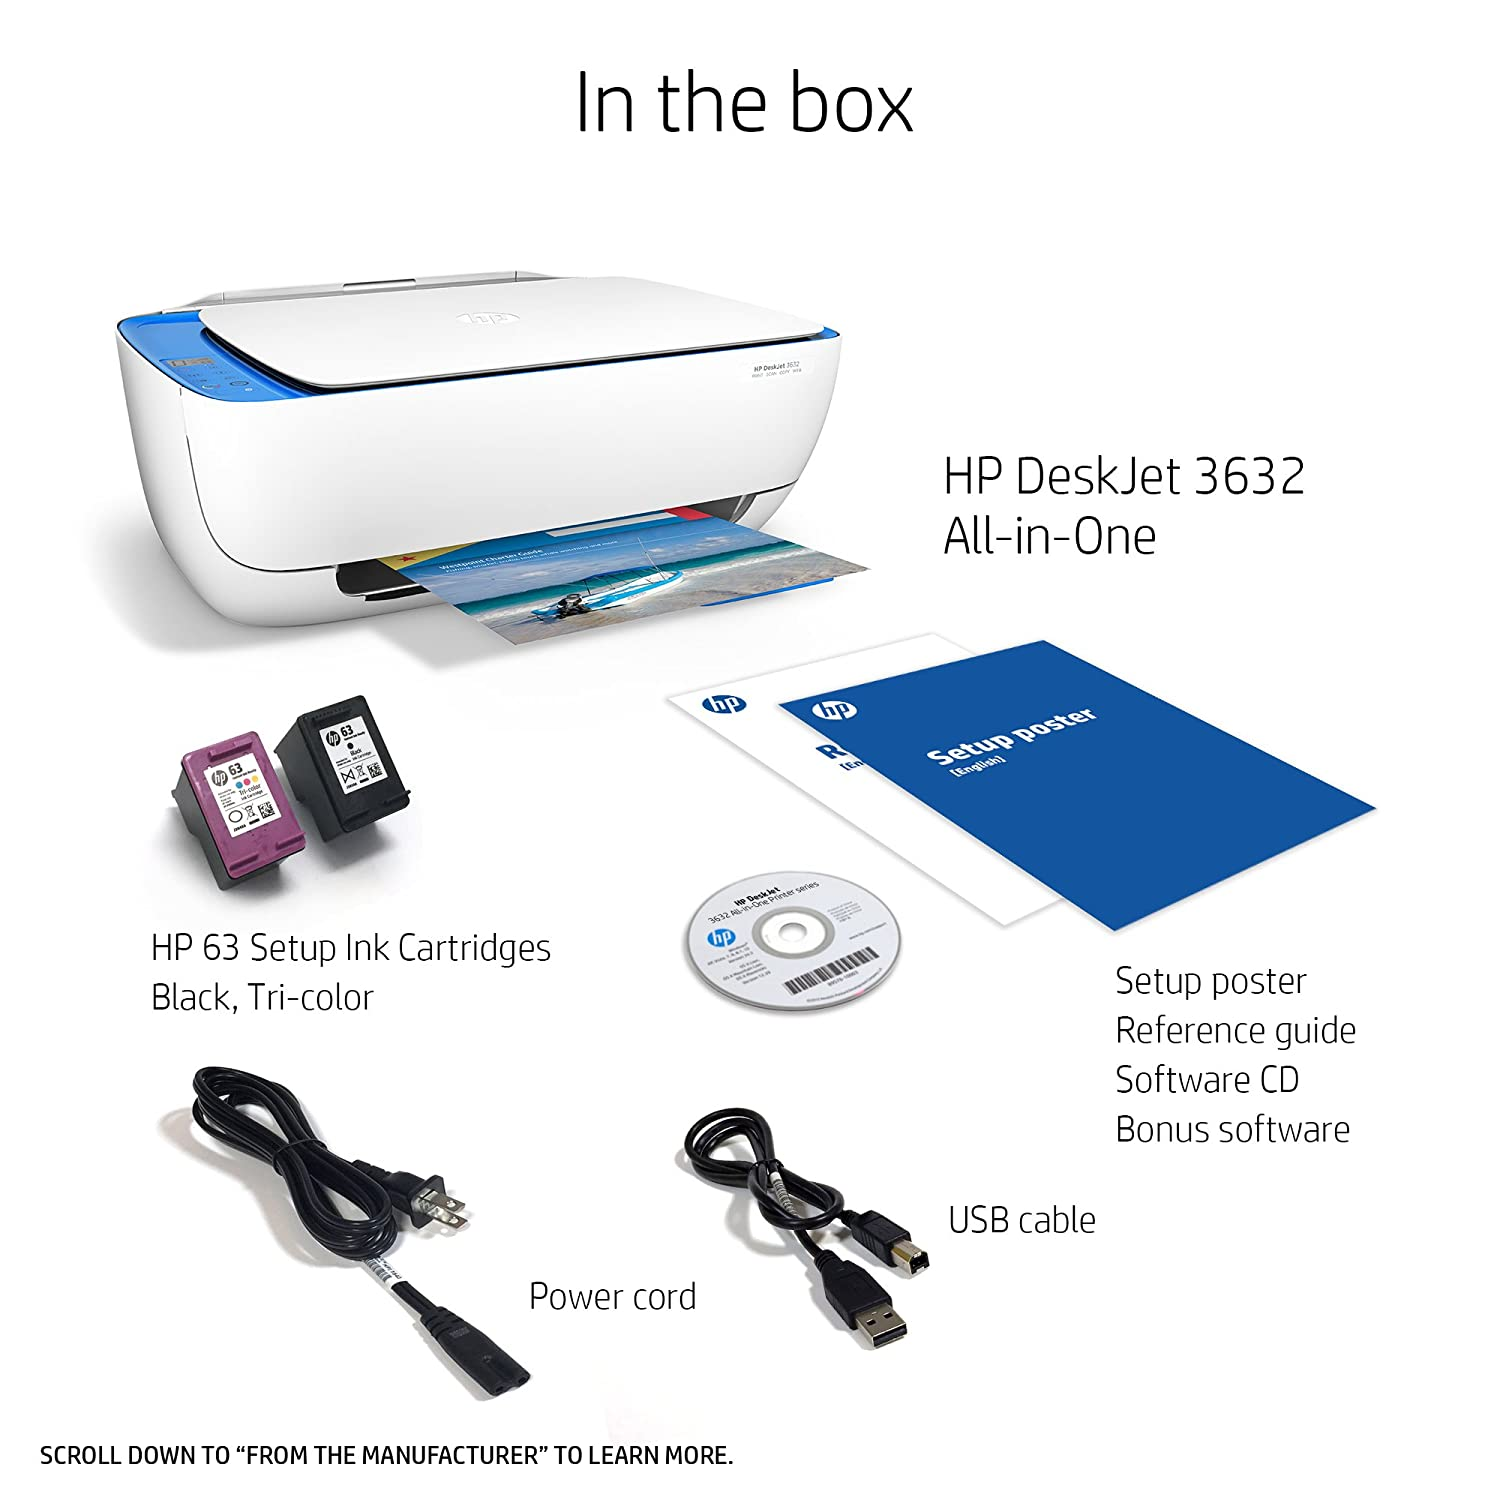 hp instant reference guide open source user manual u2022 rh dramatic varieties com Passport Agent Reference Guide 2012 hp ipg electronic instant reference guide